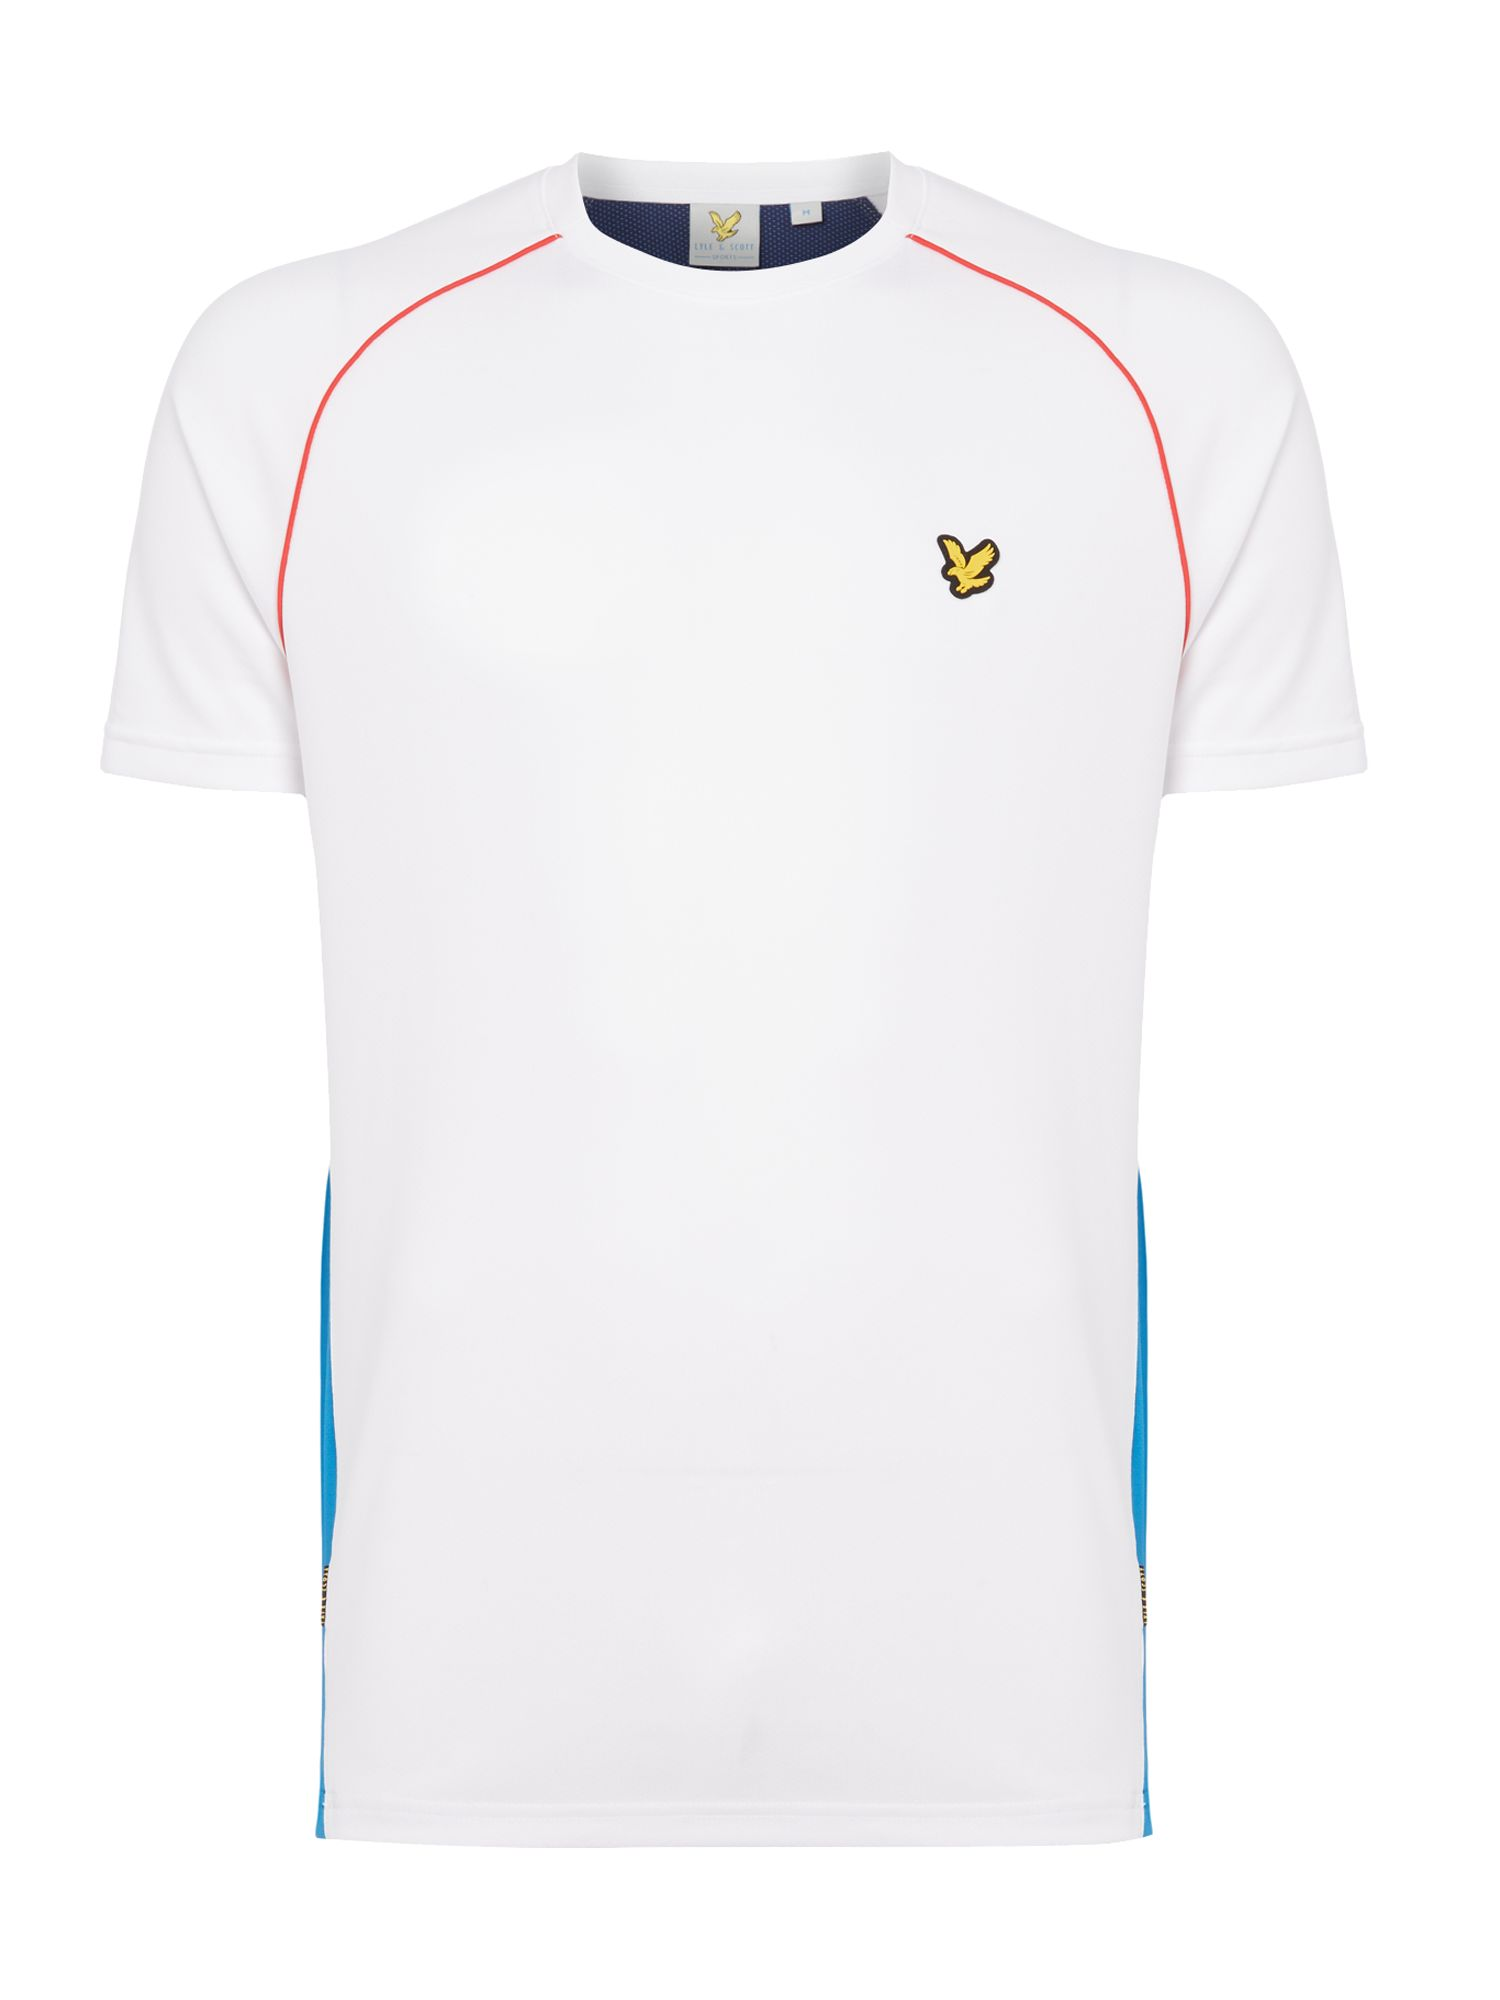 Lyle and Scott Men's Lyle and Scott Sports Two Tone Mesh Crew-Neck T-Shirt, White